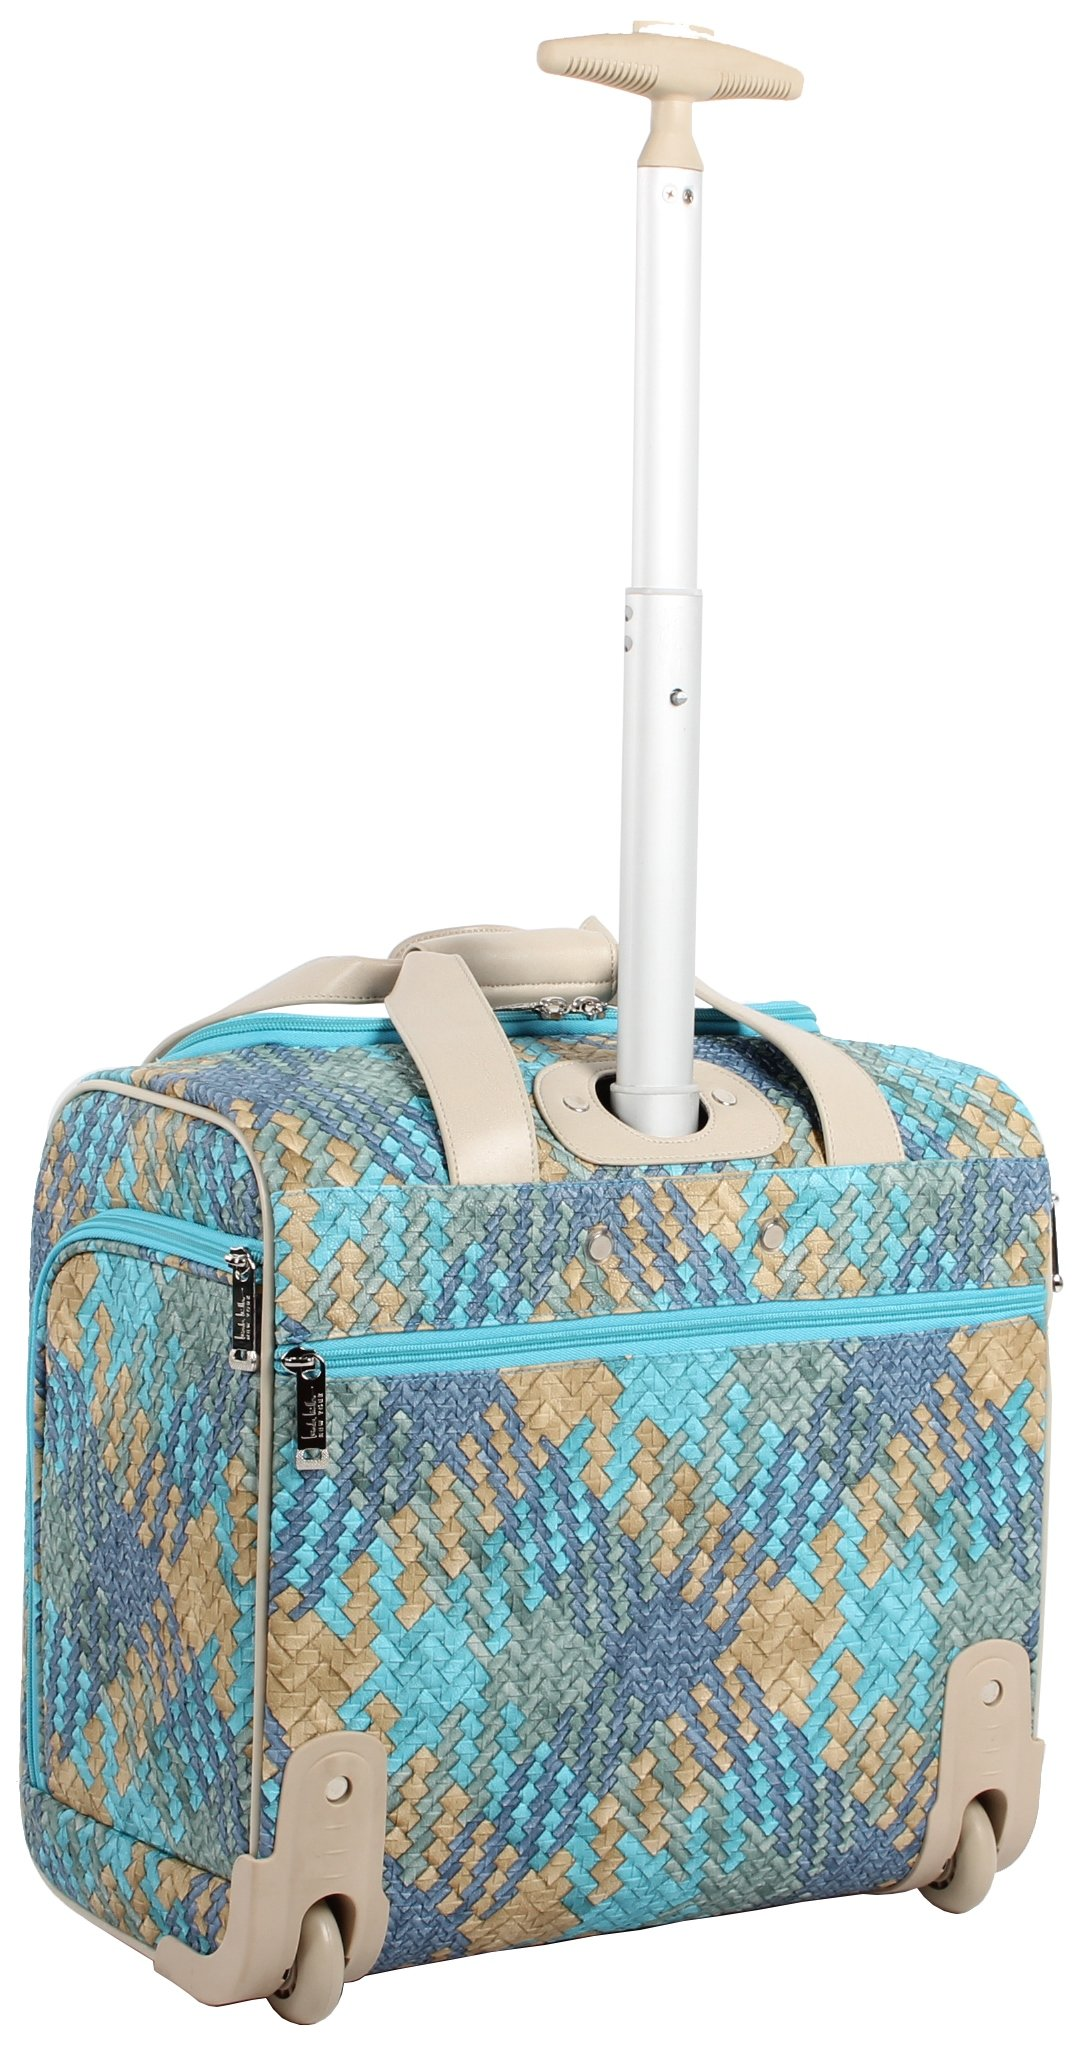 Nicole Miller Taylor Collection 15'' Under Seat Bag (Woven Teal) by Nicole Miller (Image #3)